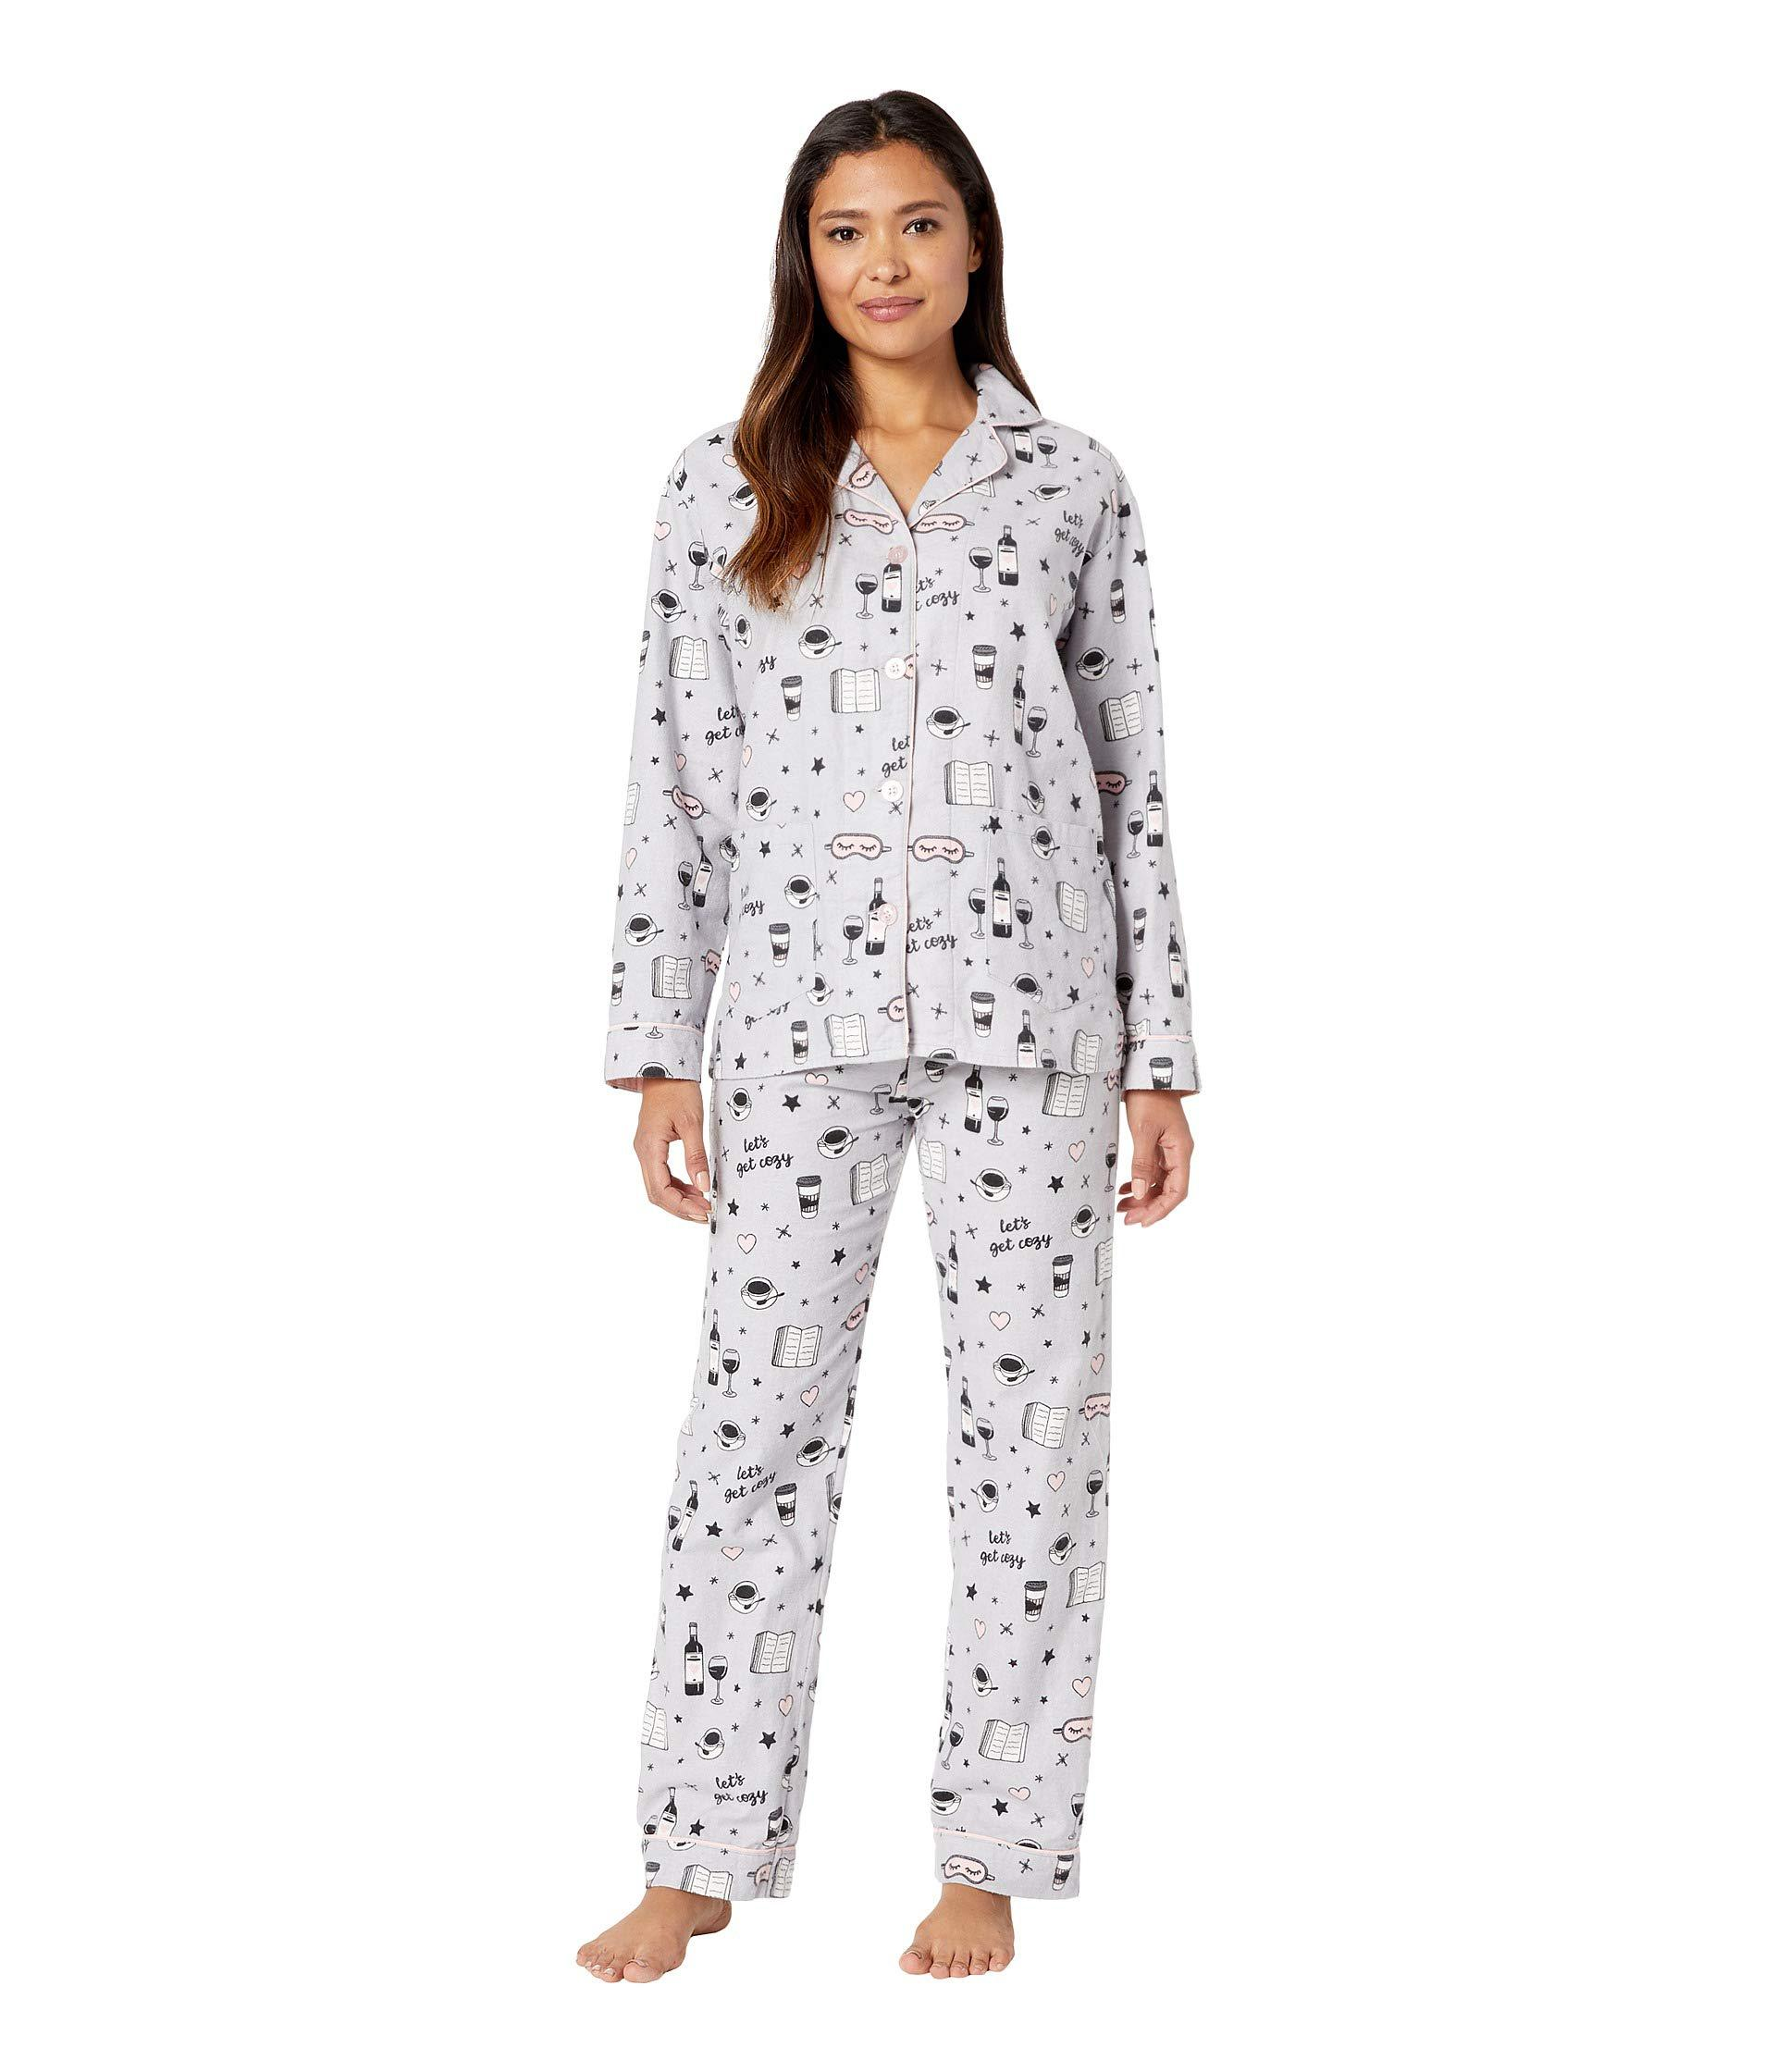 3bd3e5f61b8 Lyst - Pj Salvage Let s Get Cozy Pj Set (light Grey) Women s Pajama ...